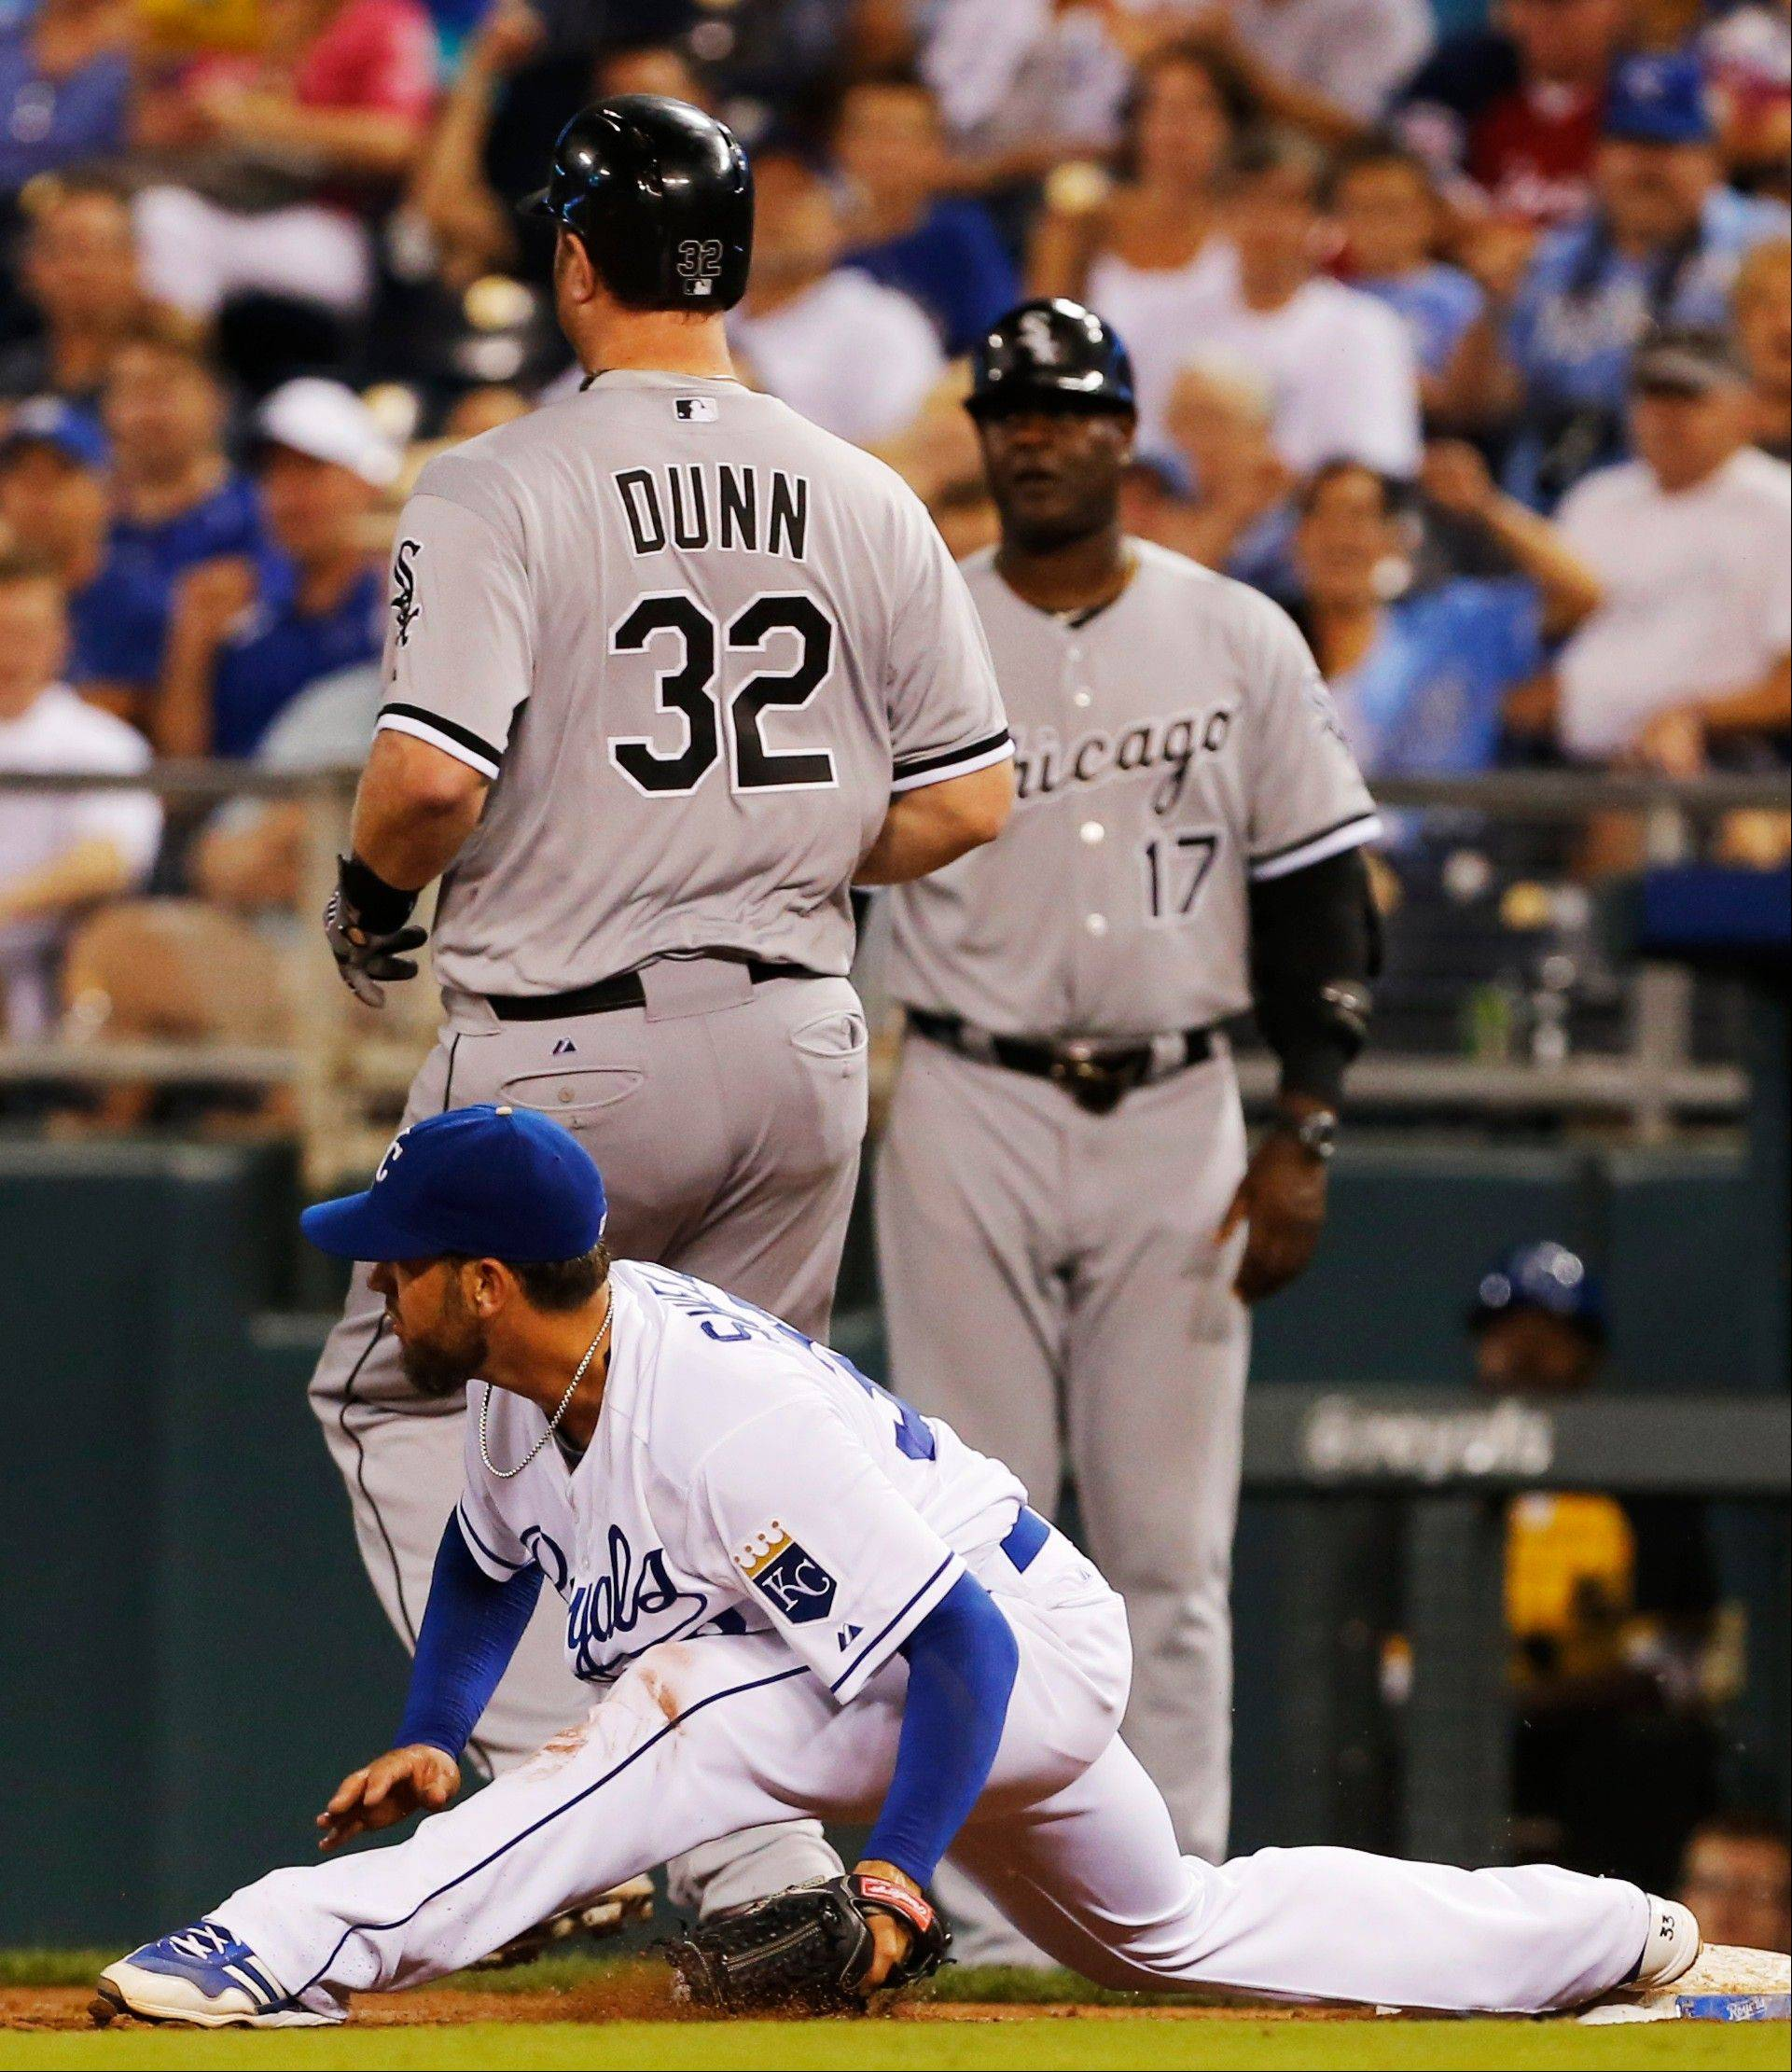 The White Sox's Adam Dunn (32) beats out a throw to Kansas City Royals starting pitcher James Shields during Thursday night's game in Kansas City, Mo. The Sox beat the Royals 4-3 in 12 innings.